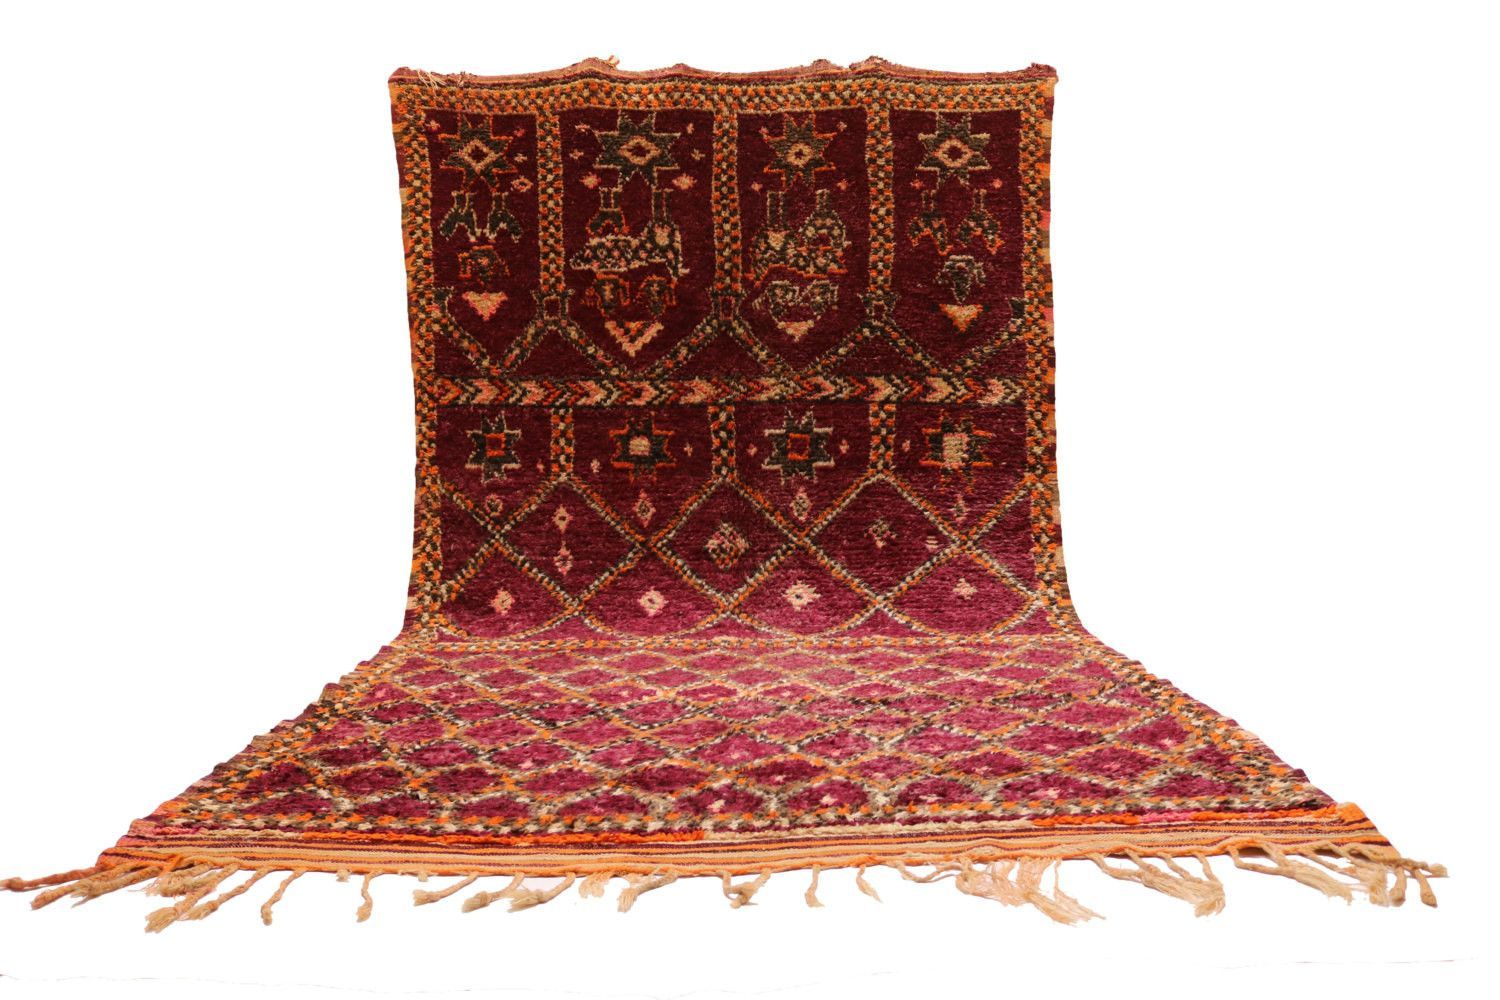 Authentic moroccan Large Carpet in Purple 7x13 berber Old 1940's BENIOURAIN Moroccan Moroccan Carpets Teppich Tapis Beni handmade rug